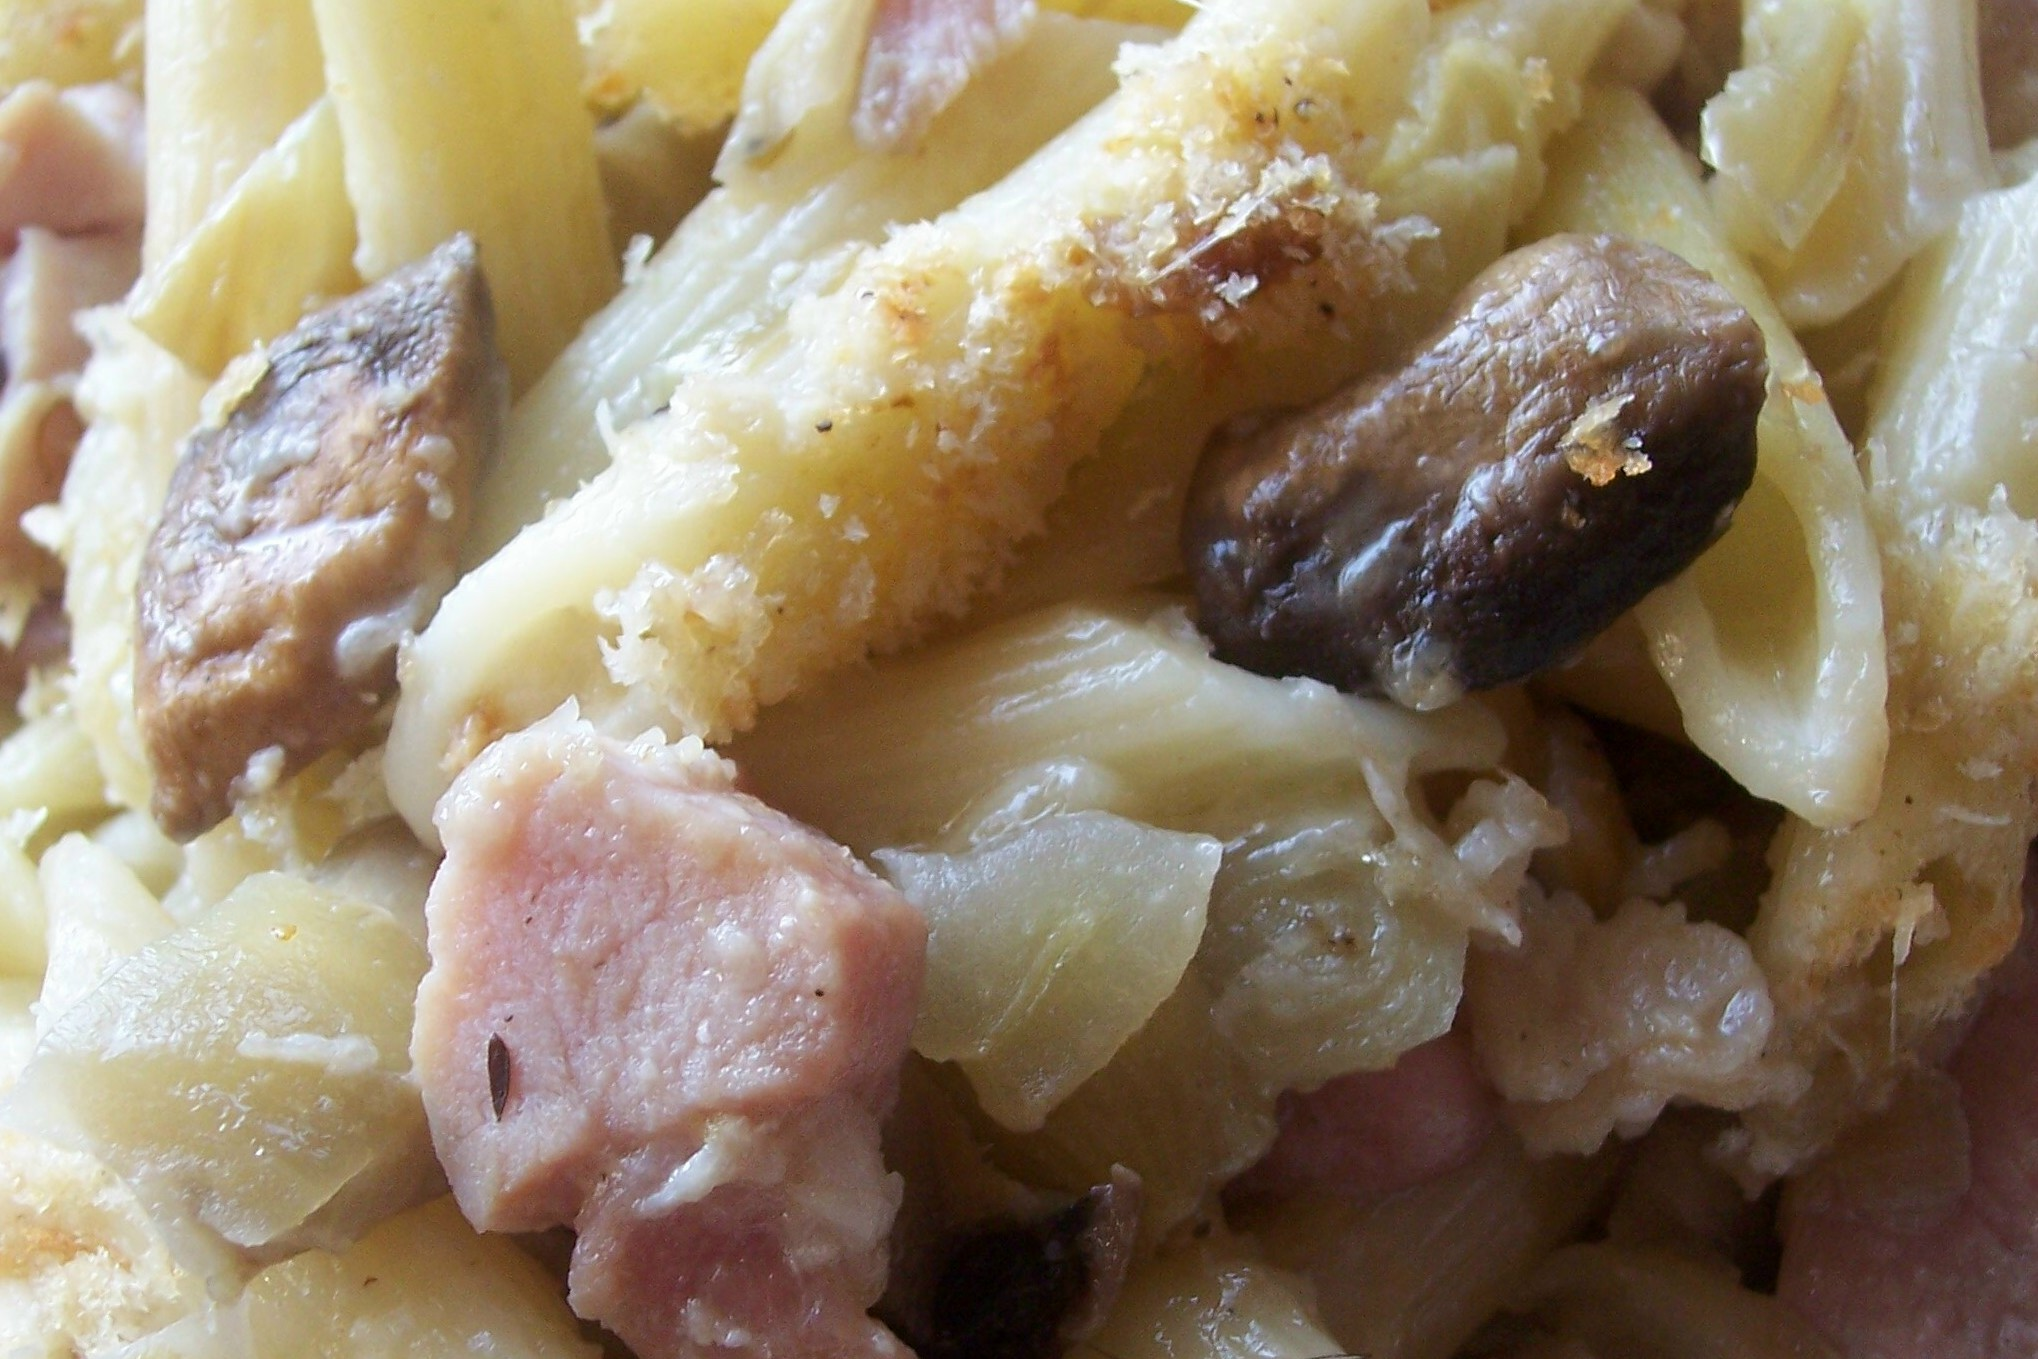 Baked Pasta with Fennel, Cream & Ham | Meanderings through my cookbook